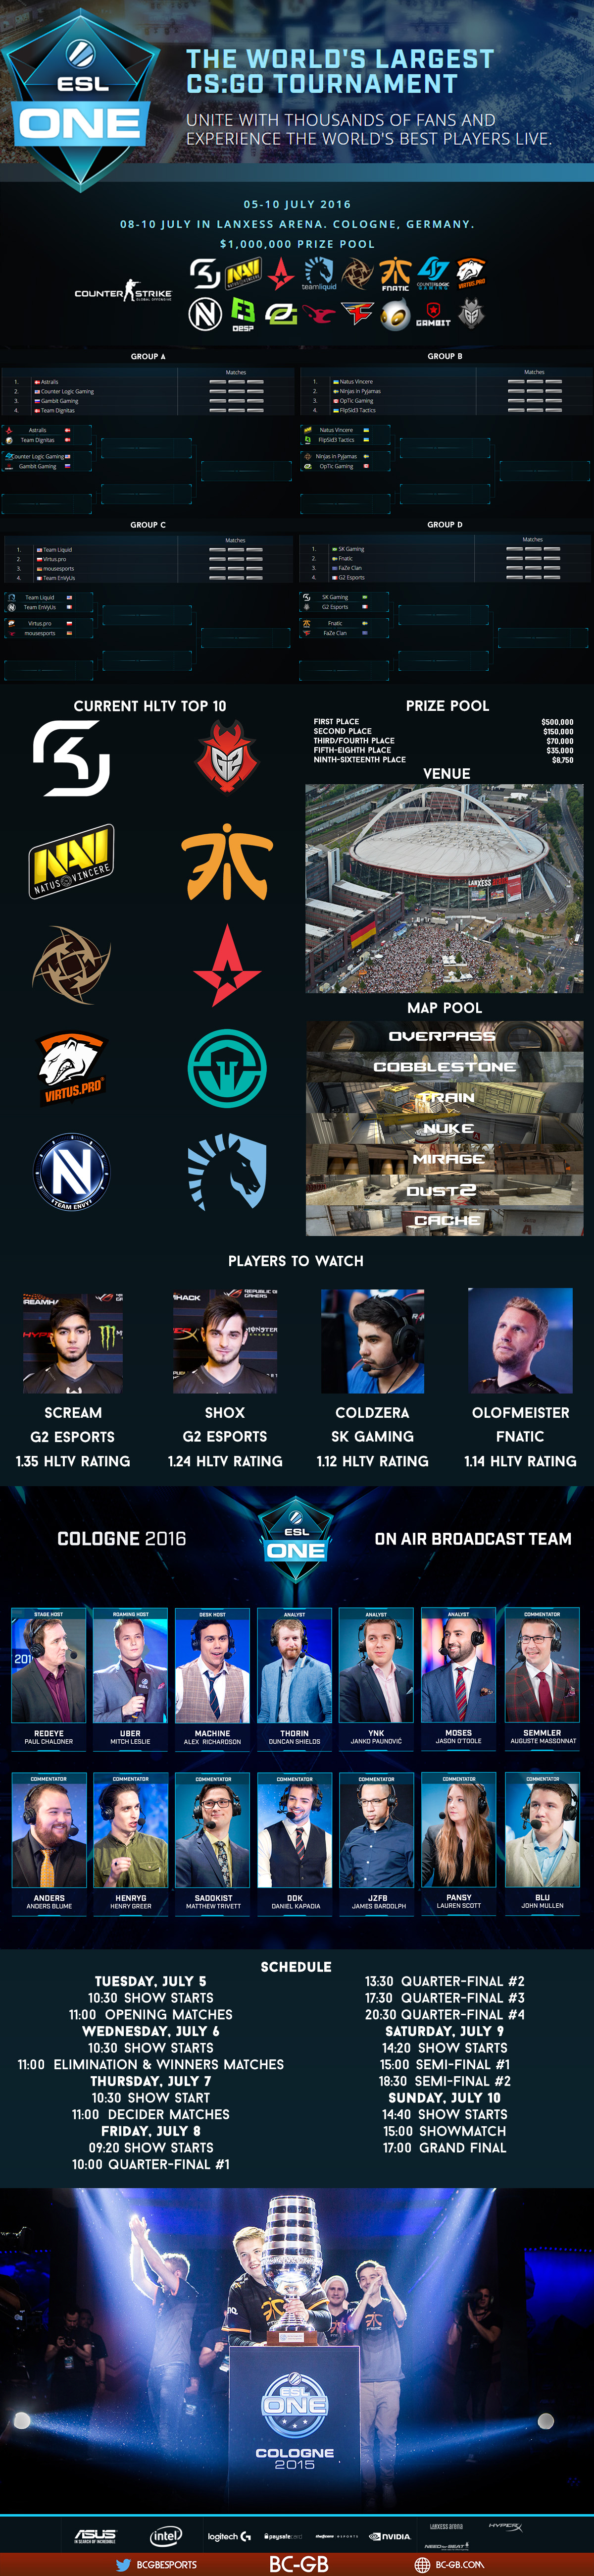 esl one cologne 2016 infographic